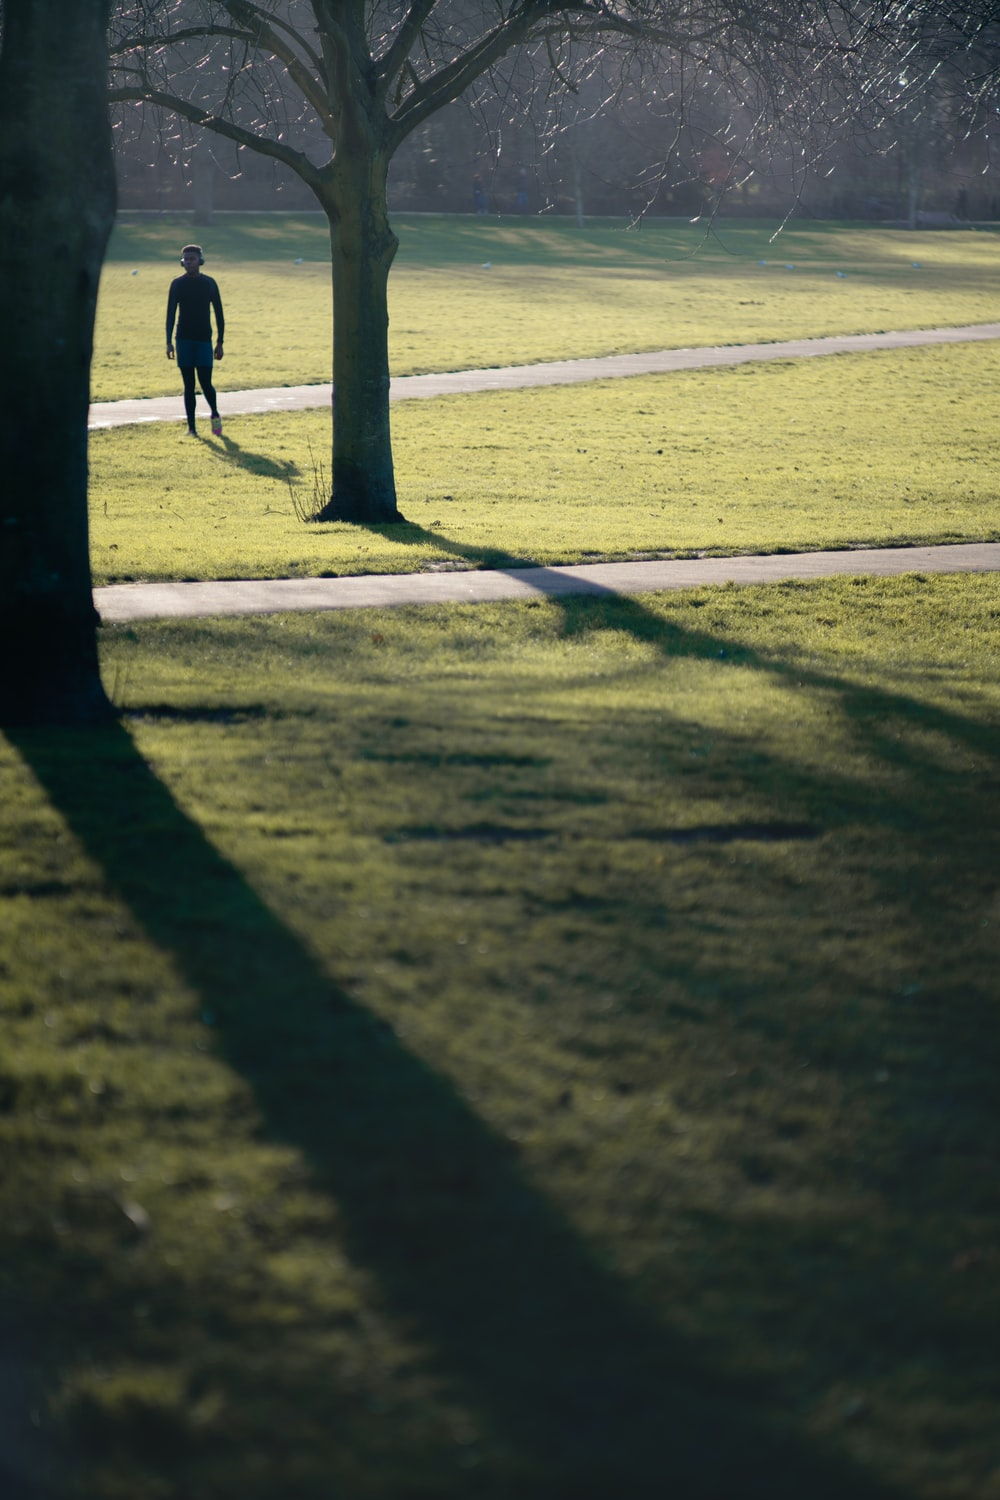 man standing near the tree during daytime